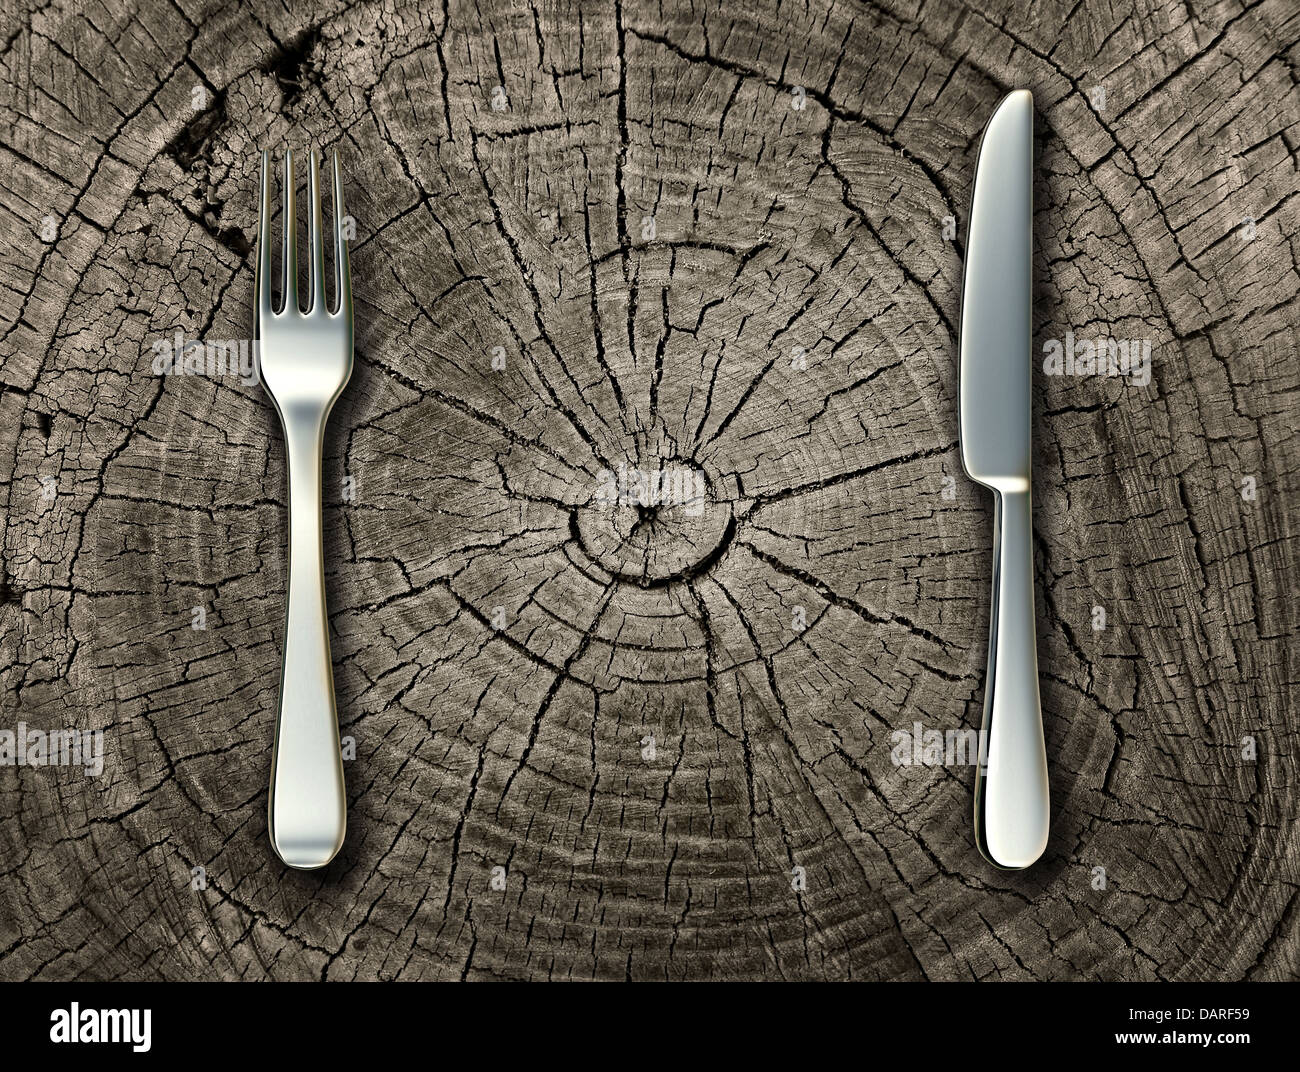 Natural food concept and organic eating healthy lifestyle idea with a silver fork and knife on a cut tree stump - Stock Image